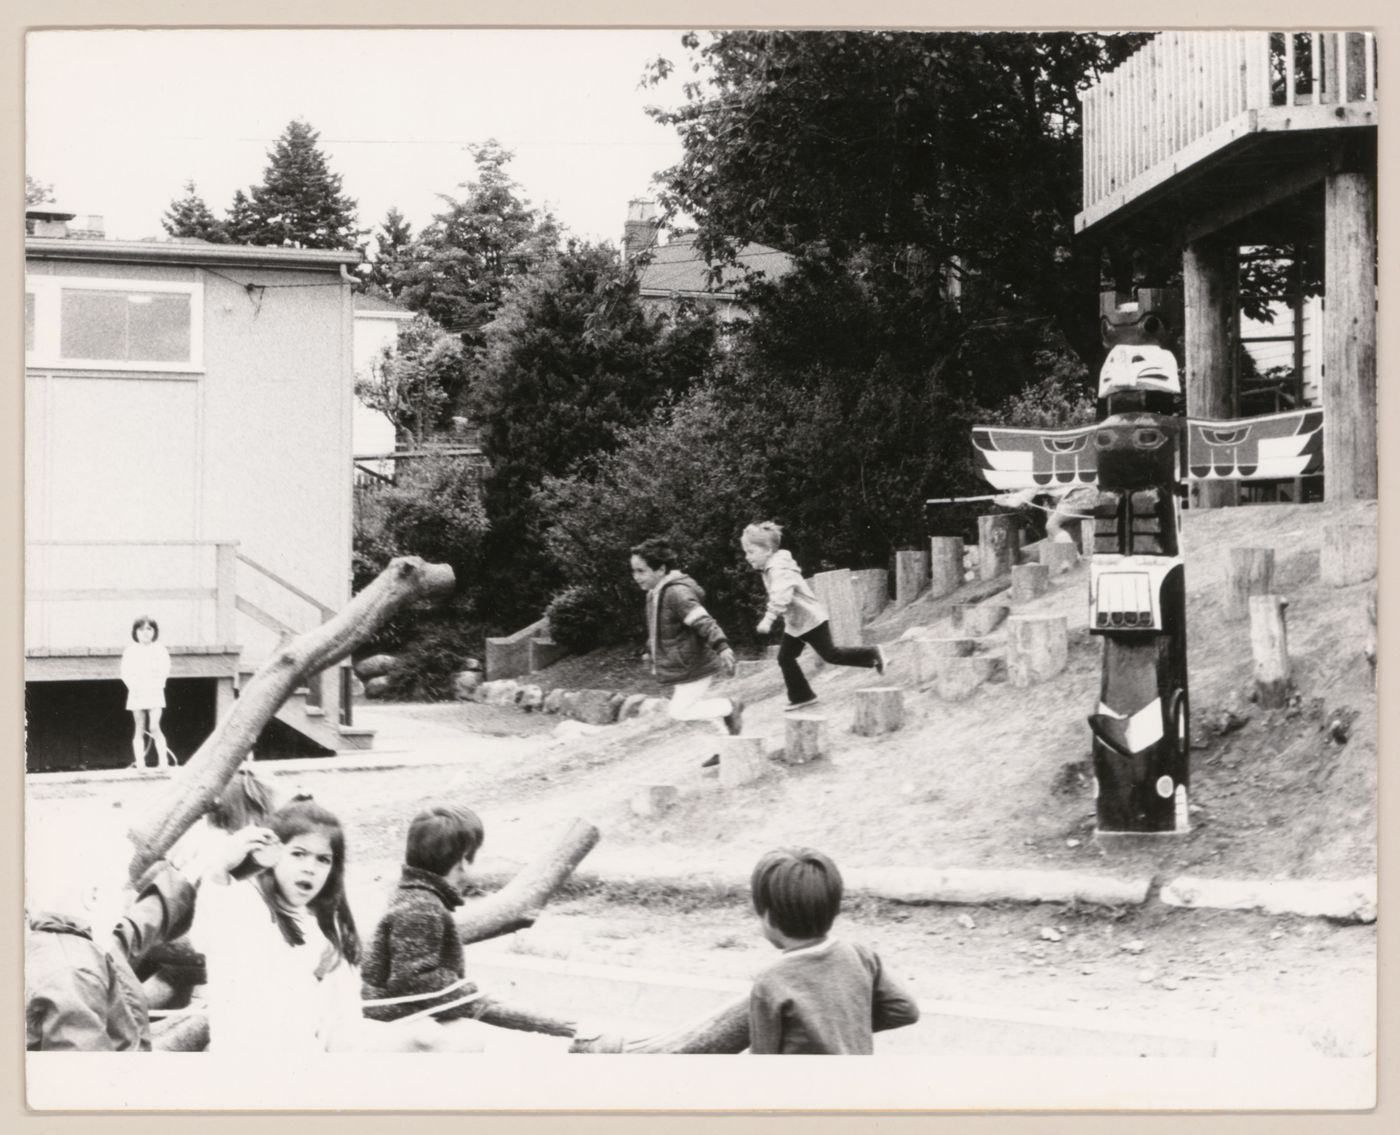 View of children playing in Southlands School Play Area, Vancouver, British Columbia